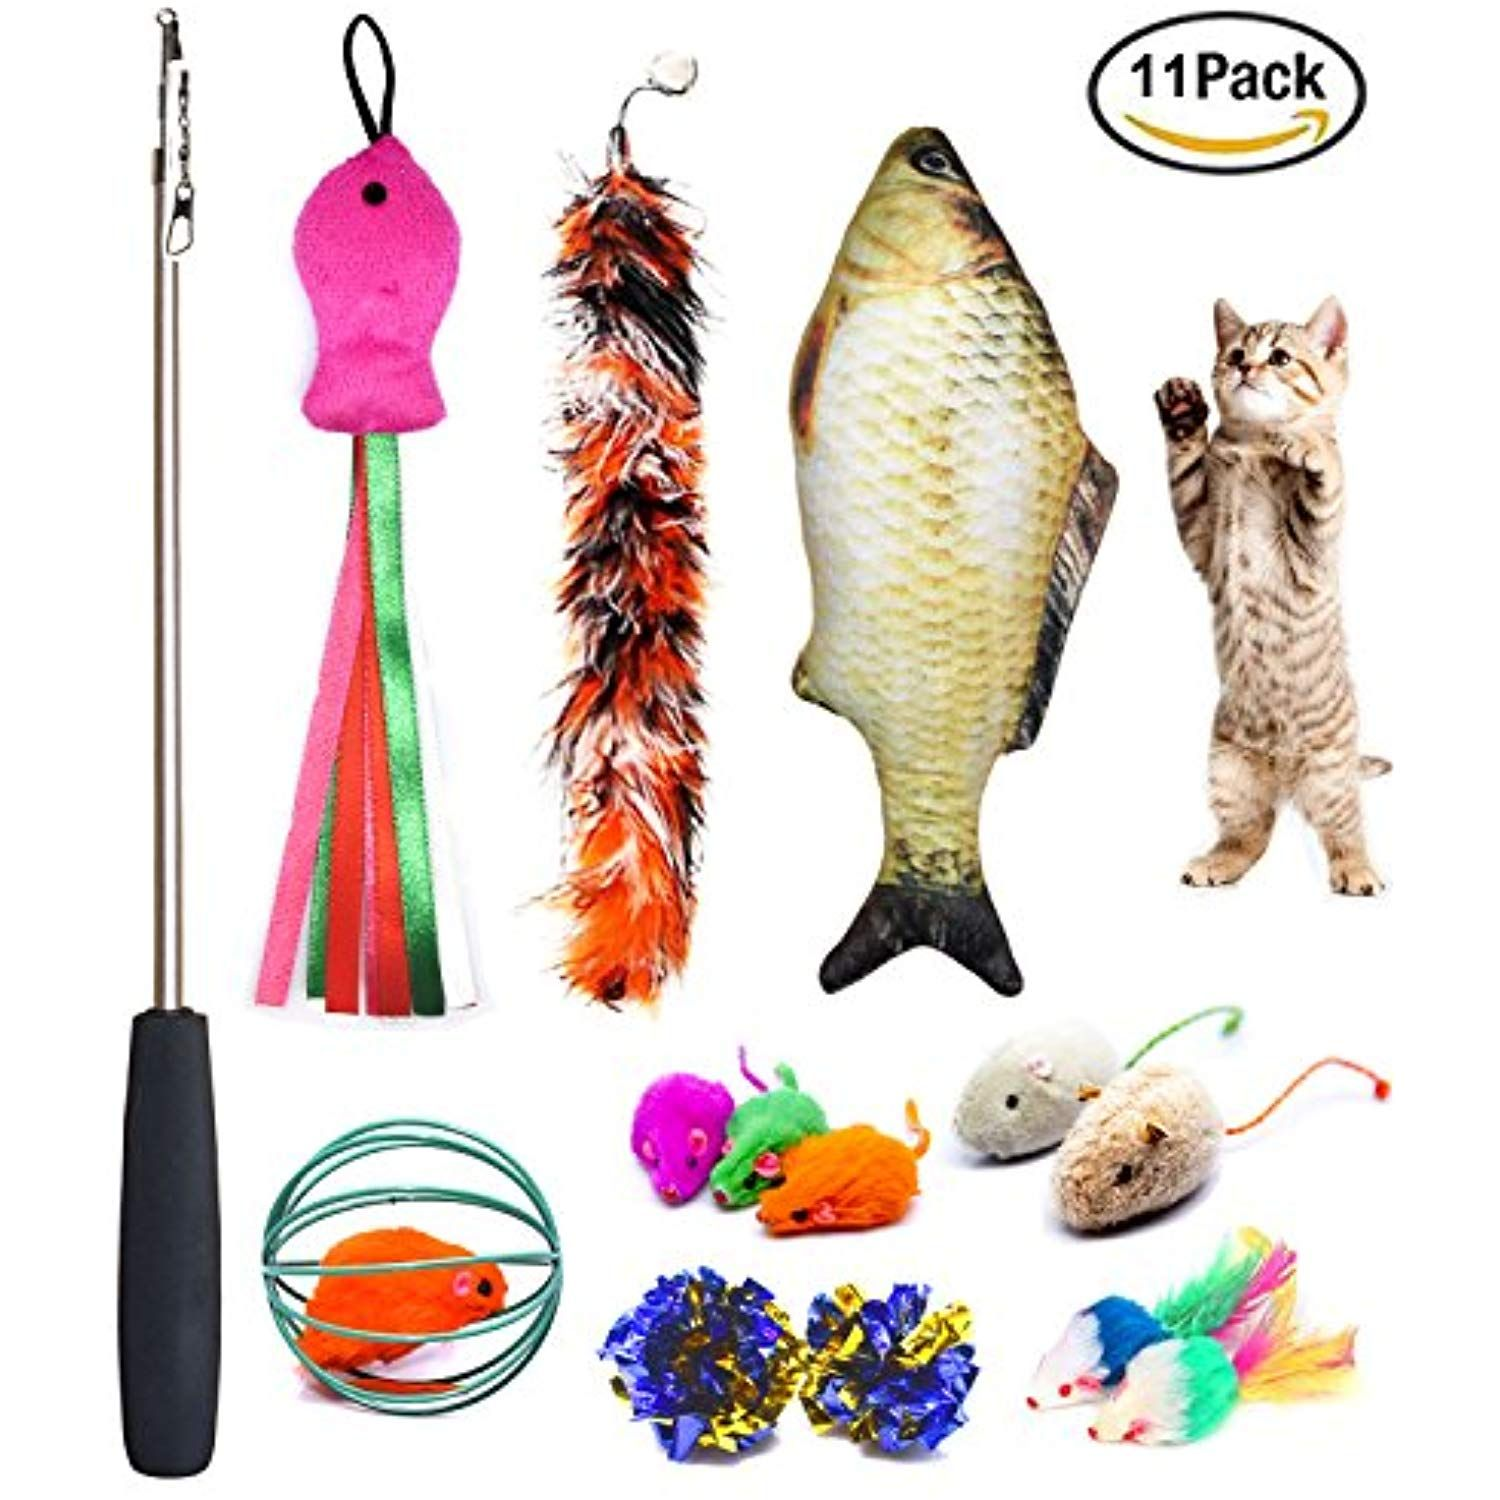 Cat Toys Set Cat Retractable Teaser Wand Catnip Fish Interactive Cat Feather Toy Mylar Crincle Balls Two Cotton Mice Two Fluffy Mouse Diy Cat Toys Pet Toys Cat Toys